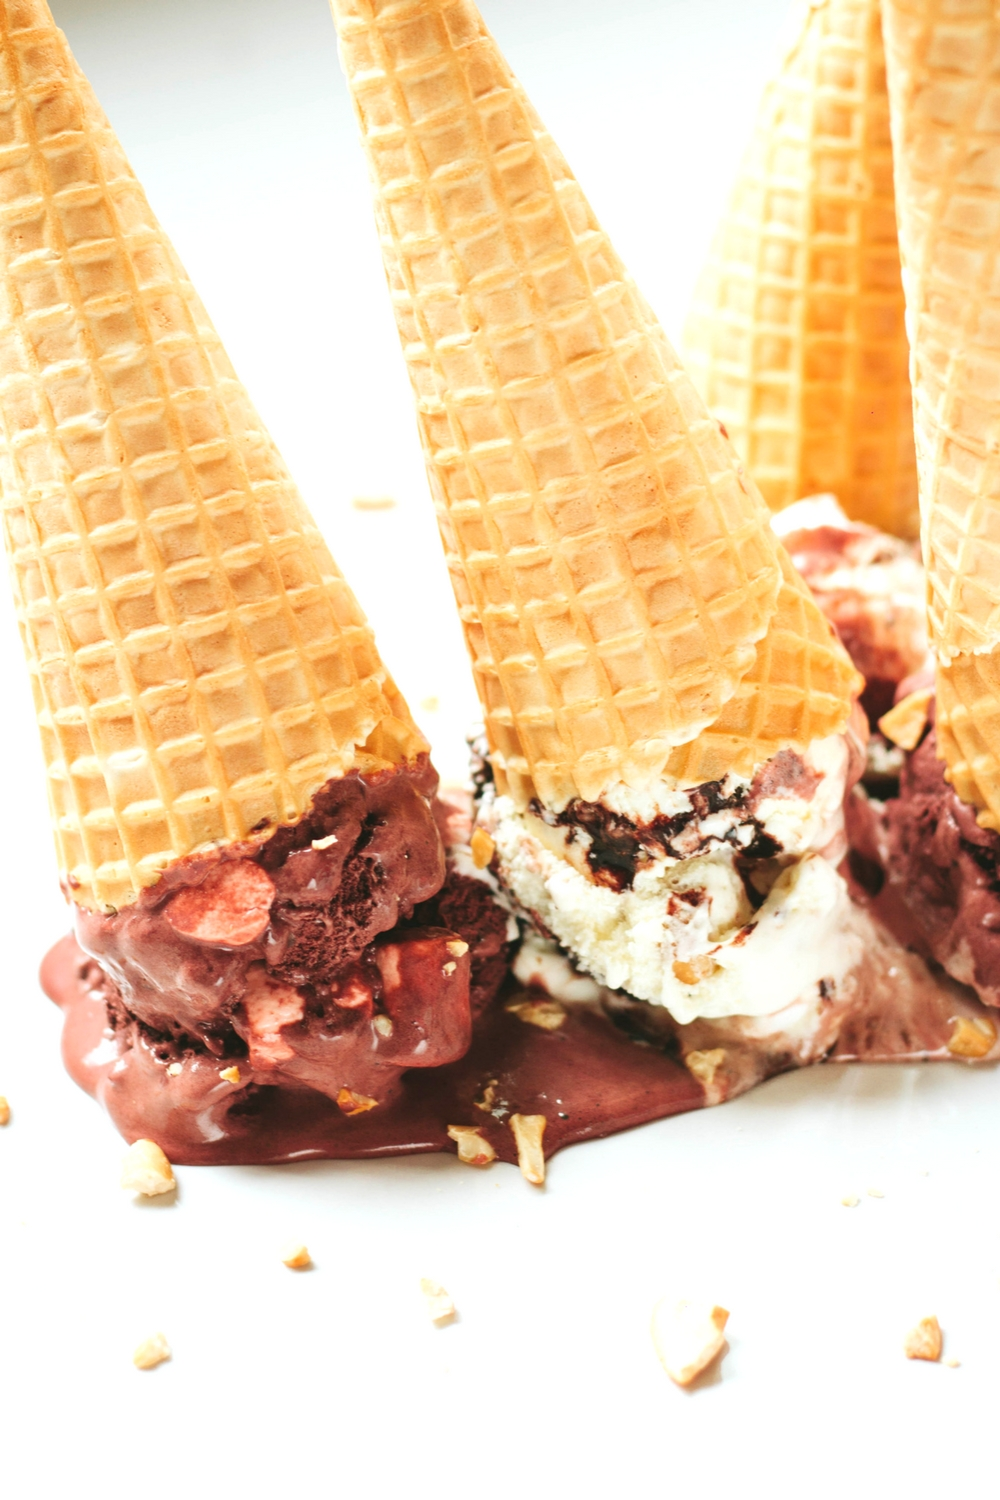 Cool Things - Ice Cream